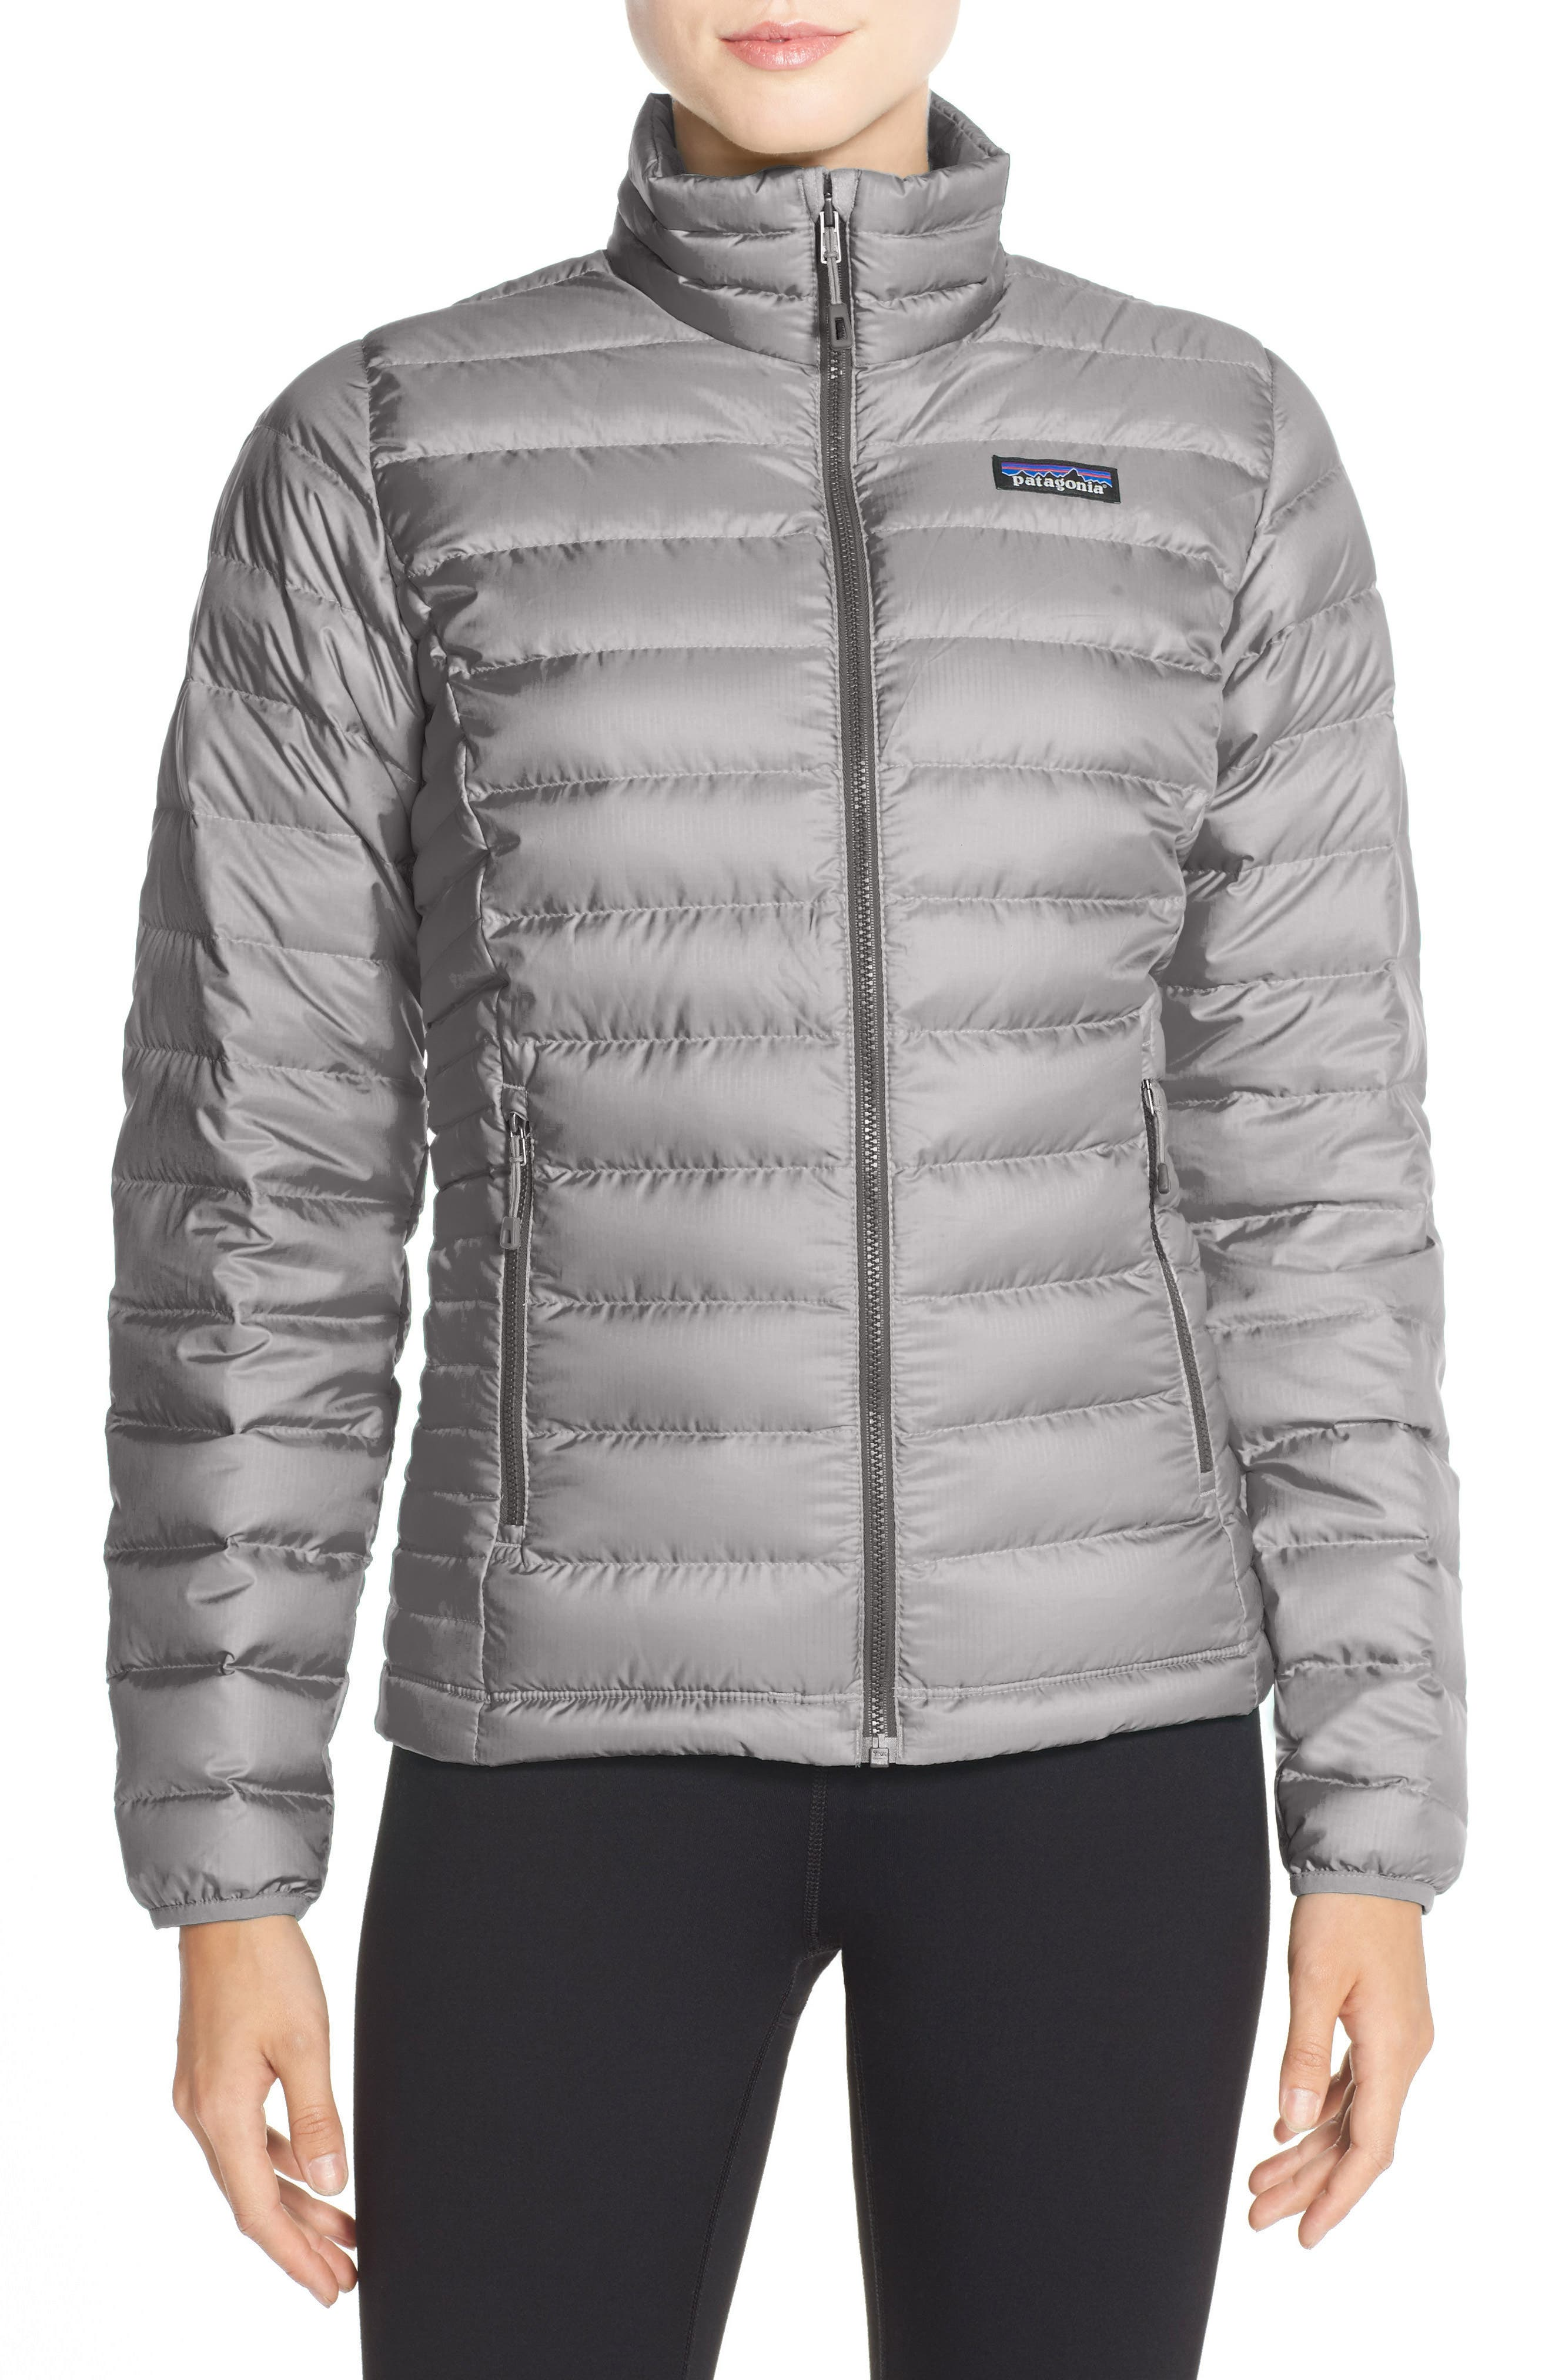 Packable Down Jacket,                             Main thumbnail 1, color,                             Feather Grey